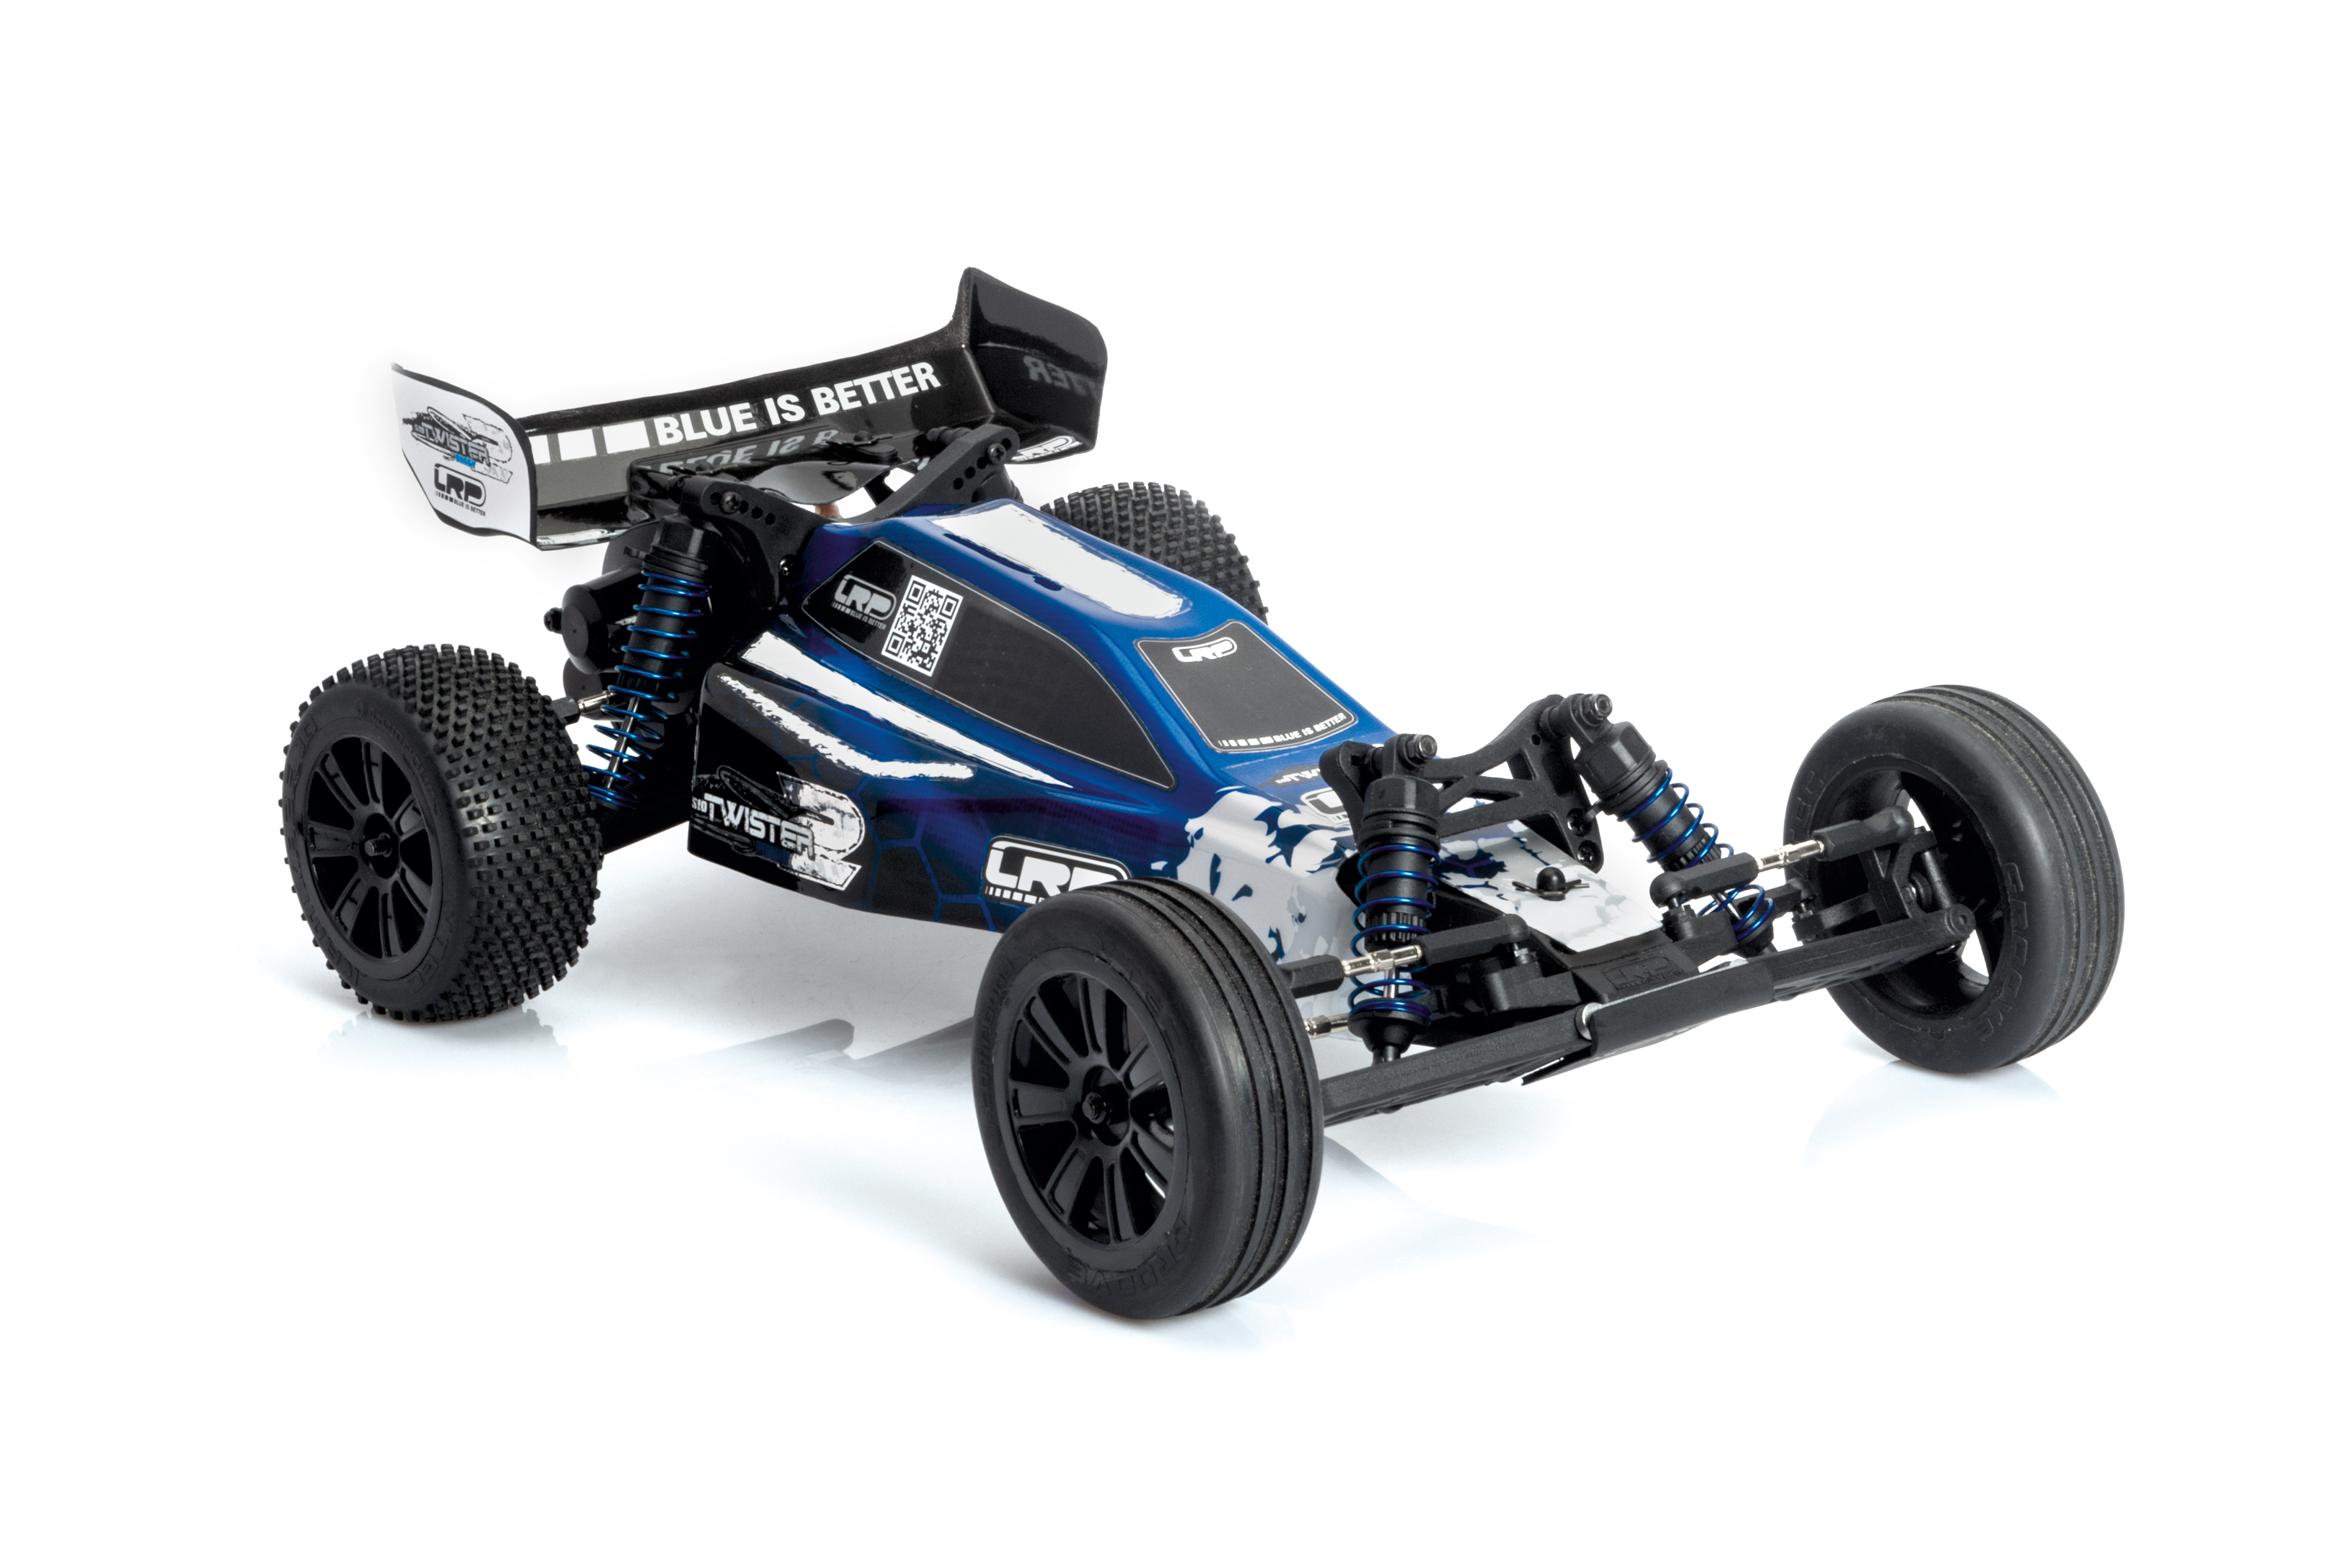 LRP S10 Twister 2 Brushless RTR 120312